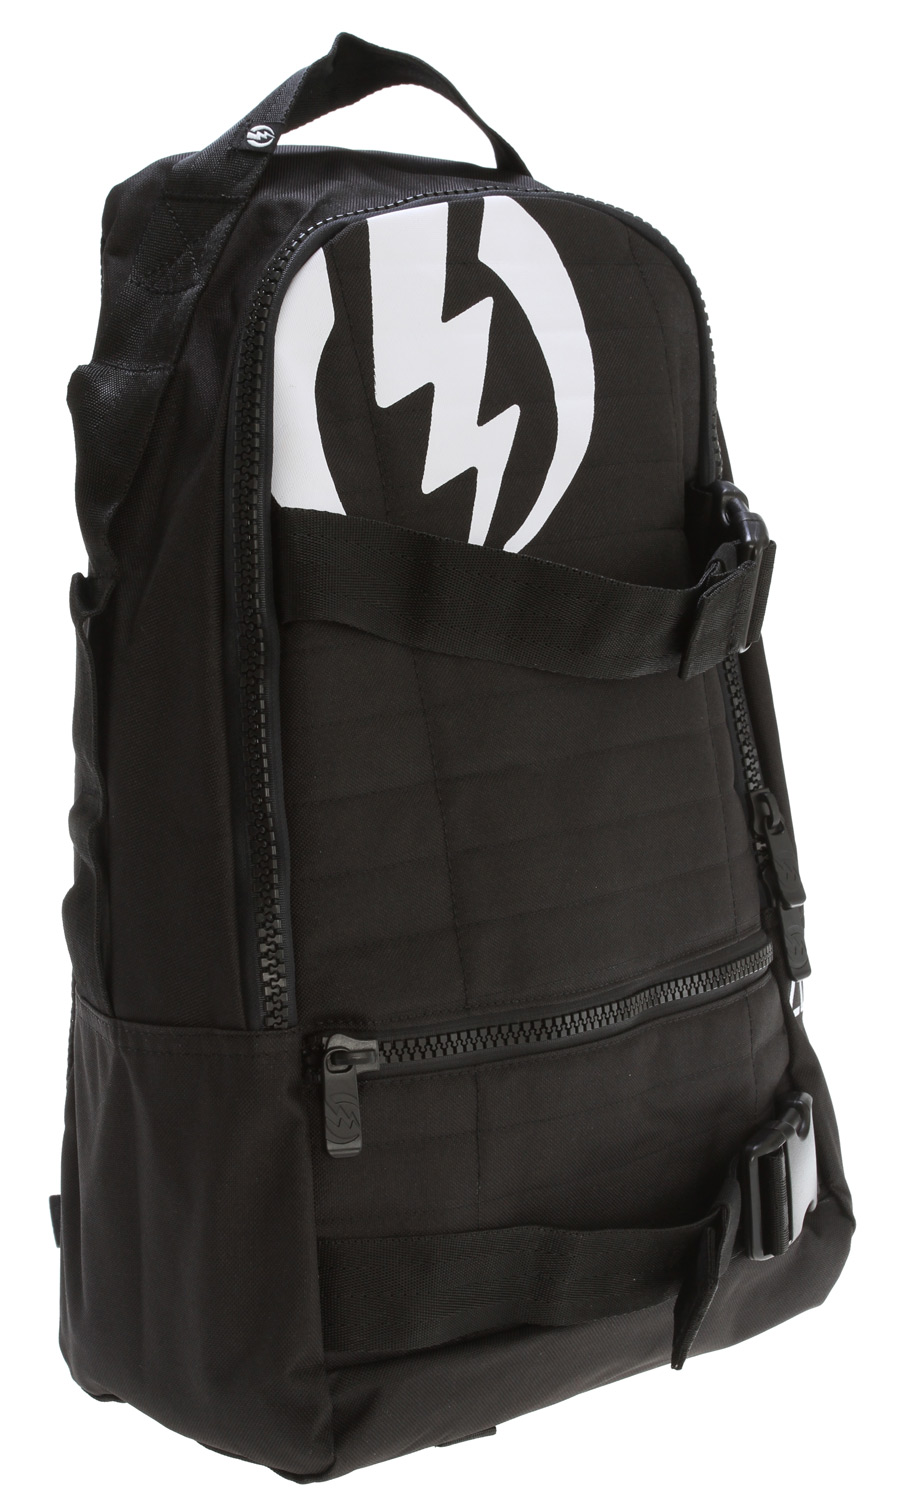 "Skateboard Key Features of the Electric MK2 Backpack Army: Skate Pack One Main Compartment With Interior Organizer Front Pocket 100% Polyester Dimensions: 18"" X 11"" X 7"" - $31.95"